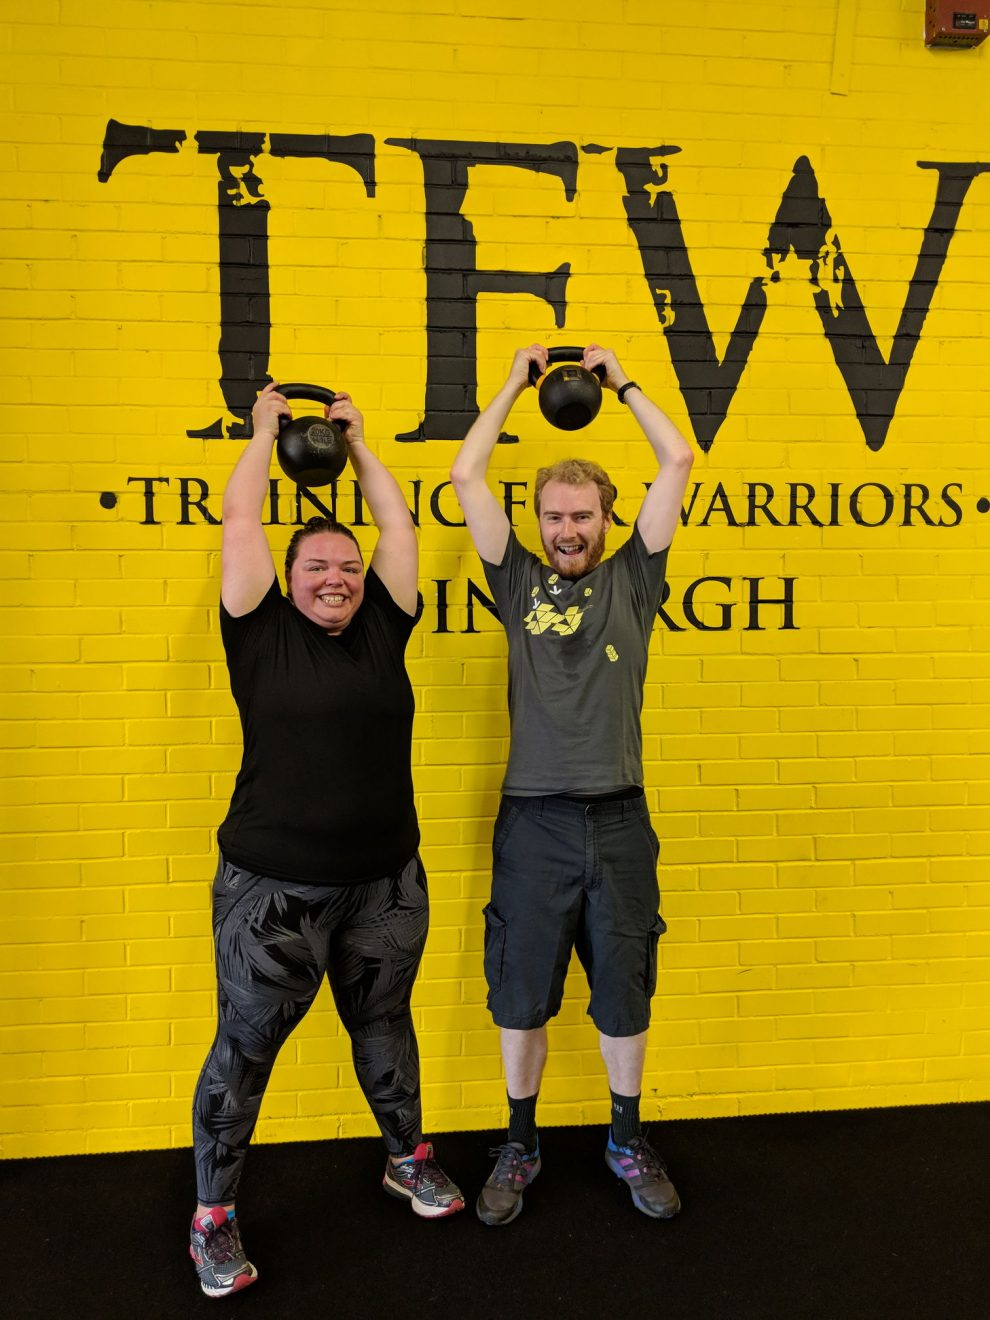 Alex and me after Training for Warriors